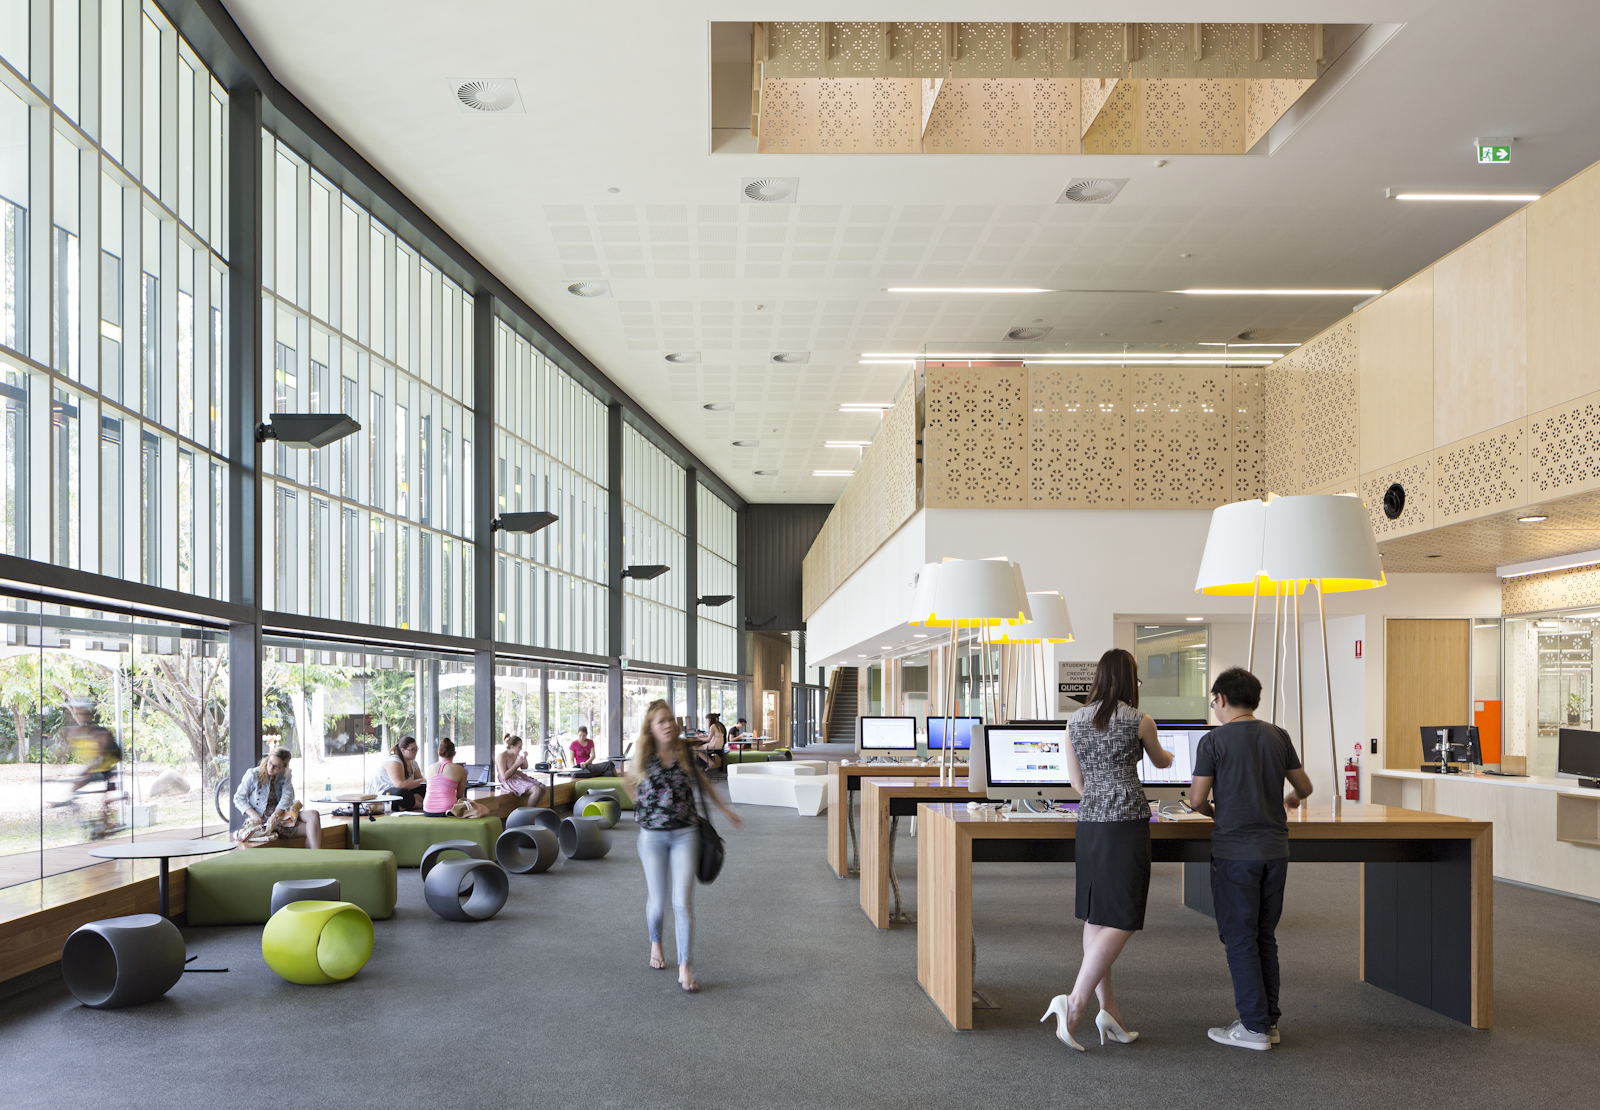 The Student Hub - Student services re-imagined as a flexible, dynamic space that can also be used as a social learning space in non peak times. A three metre fan enables airconditioning to operate at higher temperatures and reduce condensation on the facade.